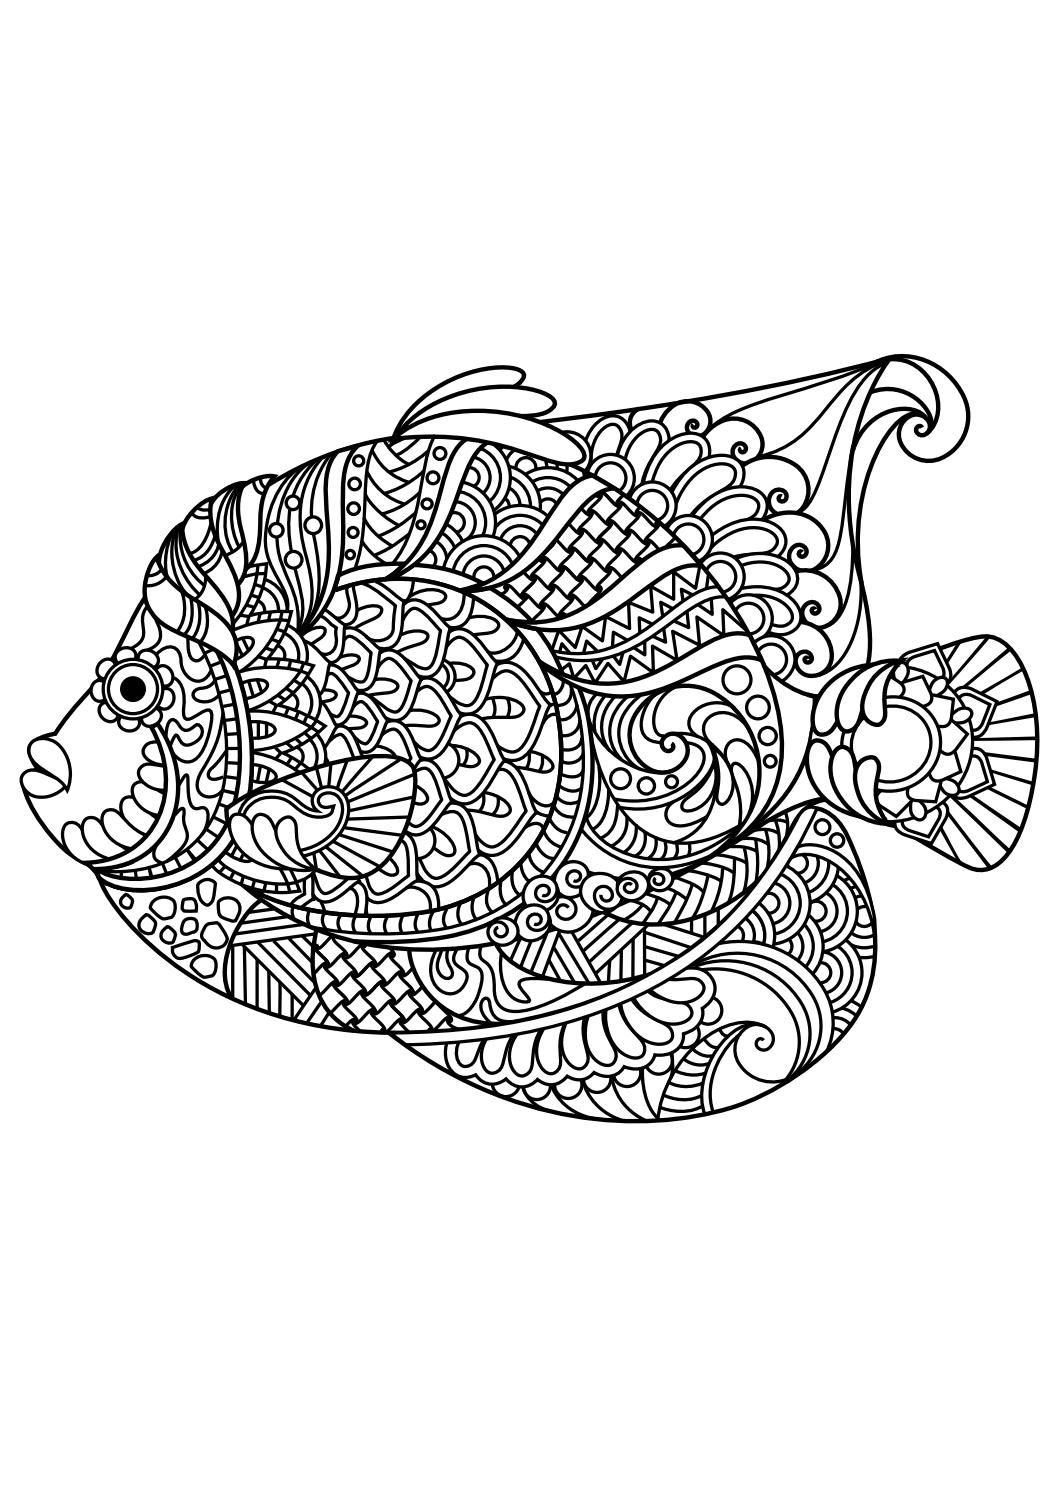 It's just a picture of Invaluable Adult Coloring Book Pdf